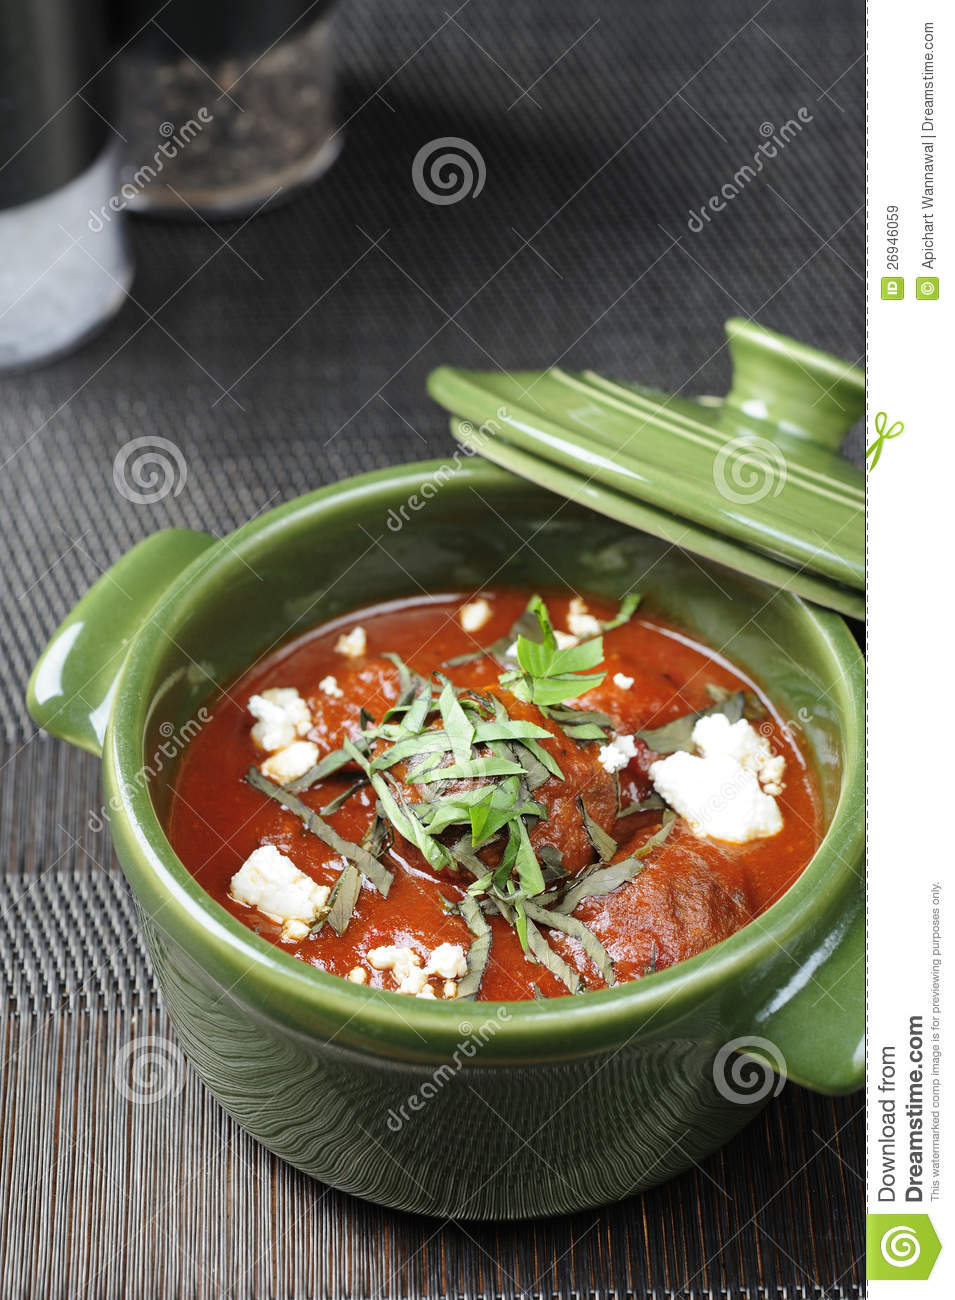 Meatballs And Tomato Sauce Royalty Free Stock Images - Image: 26946059